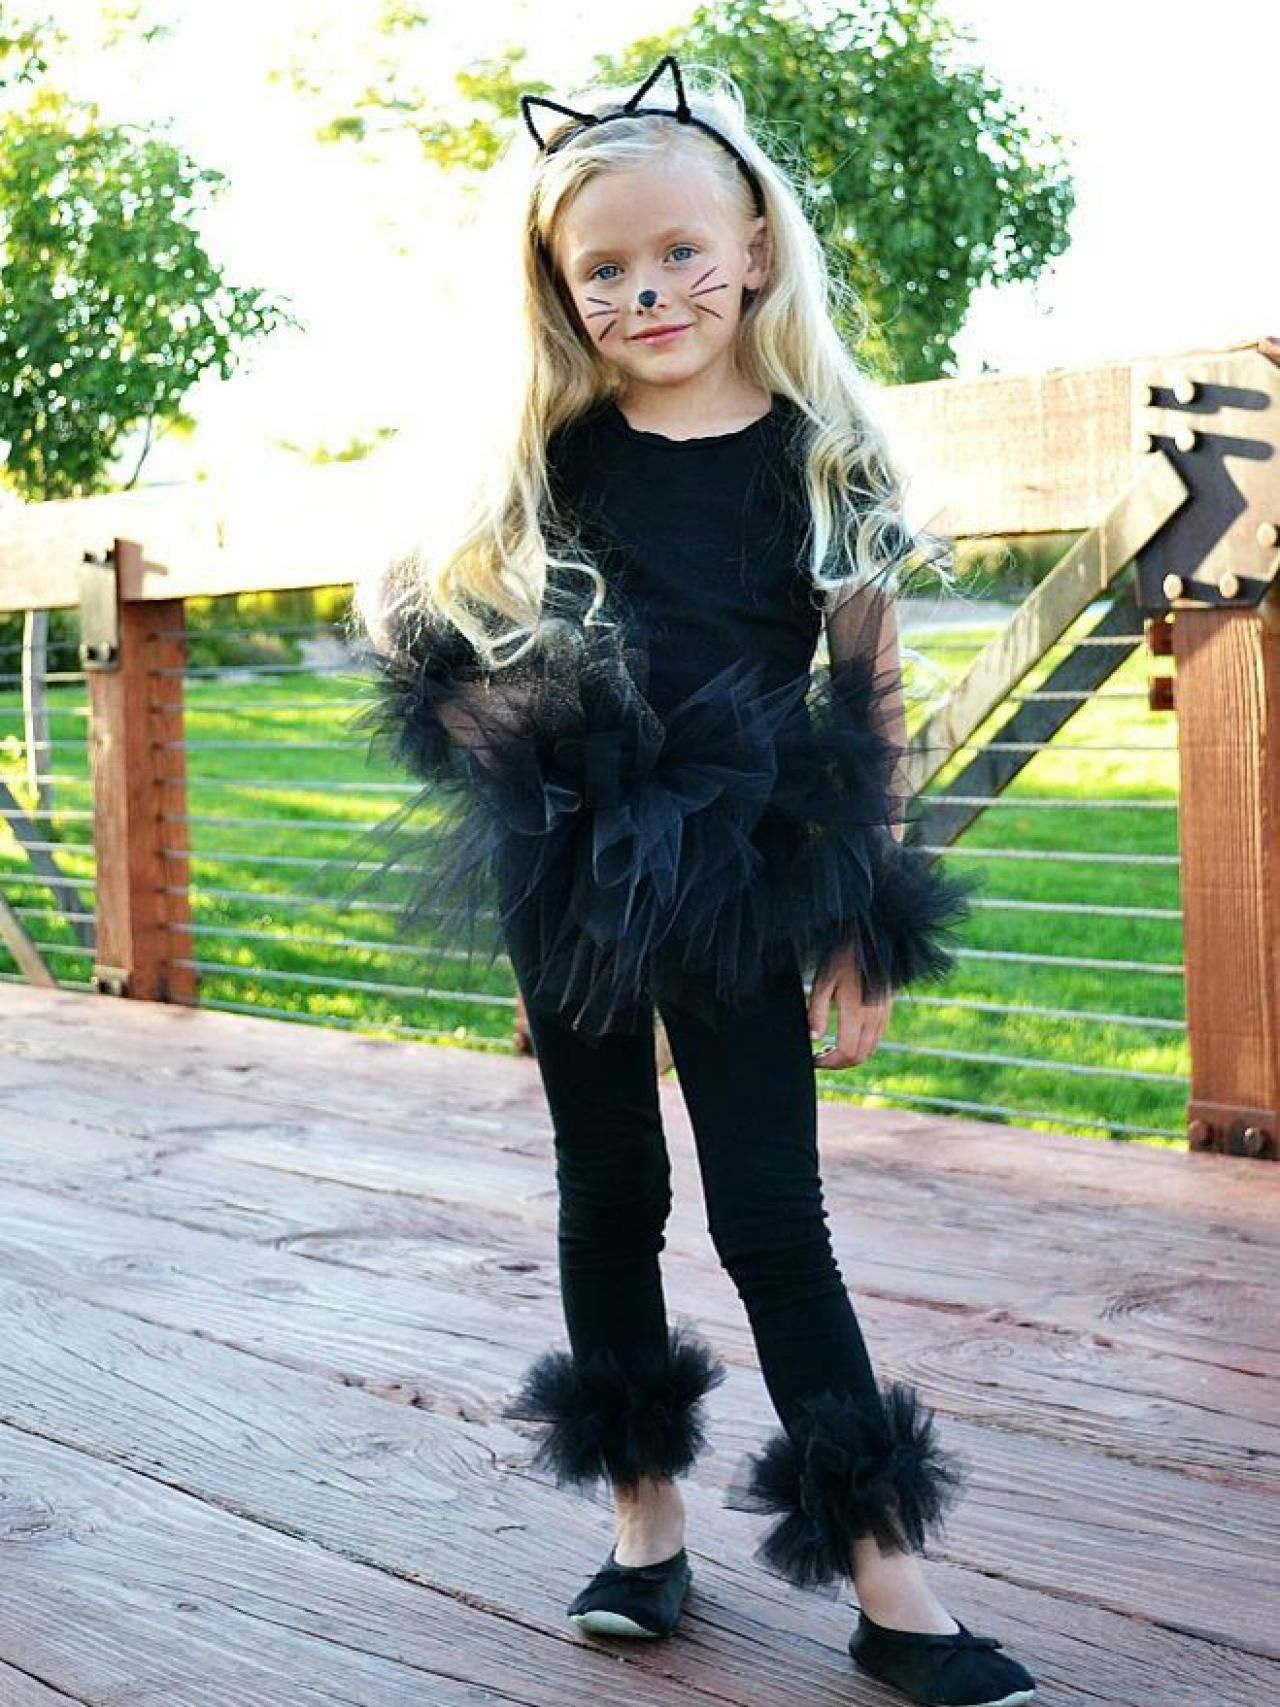 How to Make an Easy Black Cat Halloween Costume | DIY Halloween ...